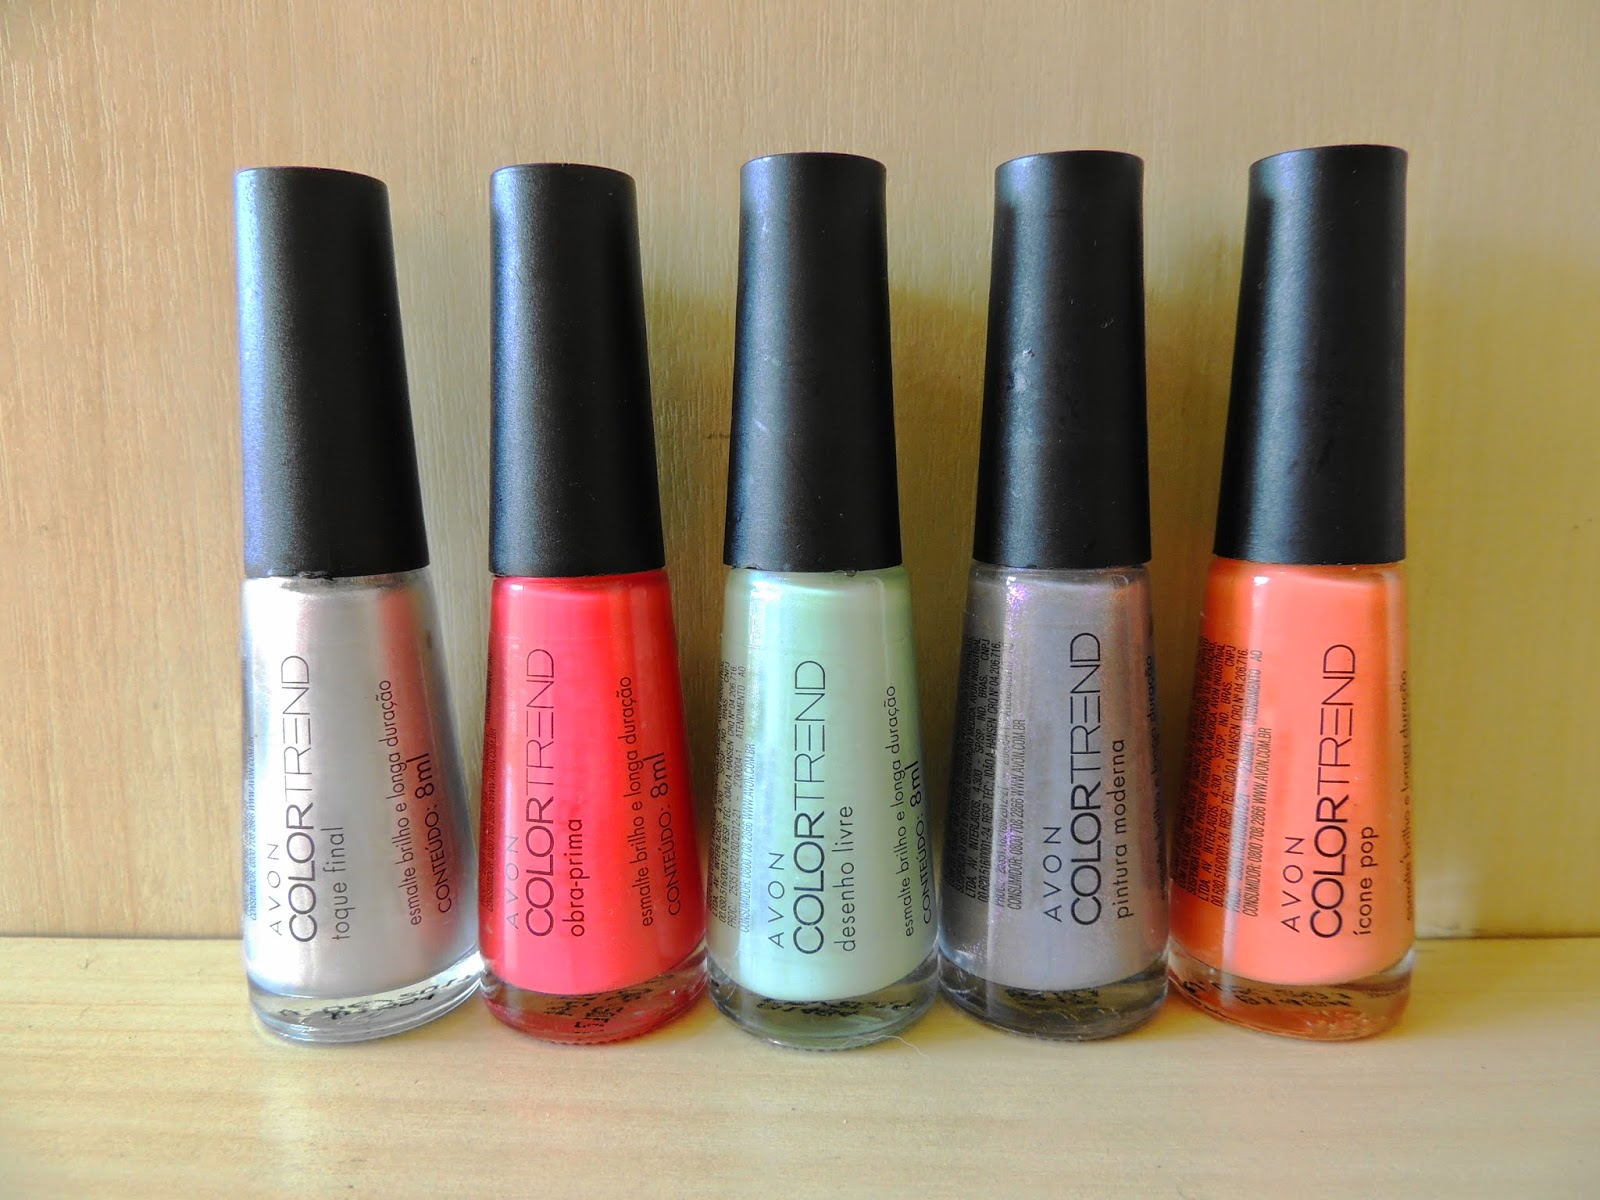 Cia Do Esmalte Esmaltes Da Colecao Pop Art Da Avon Colortrend